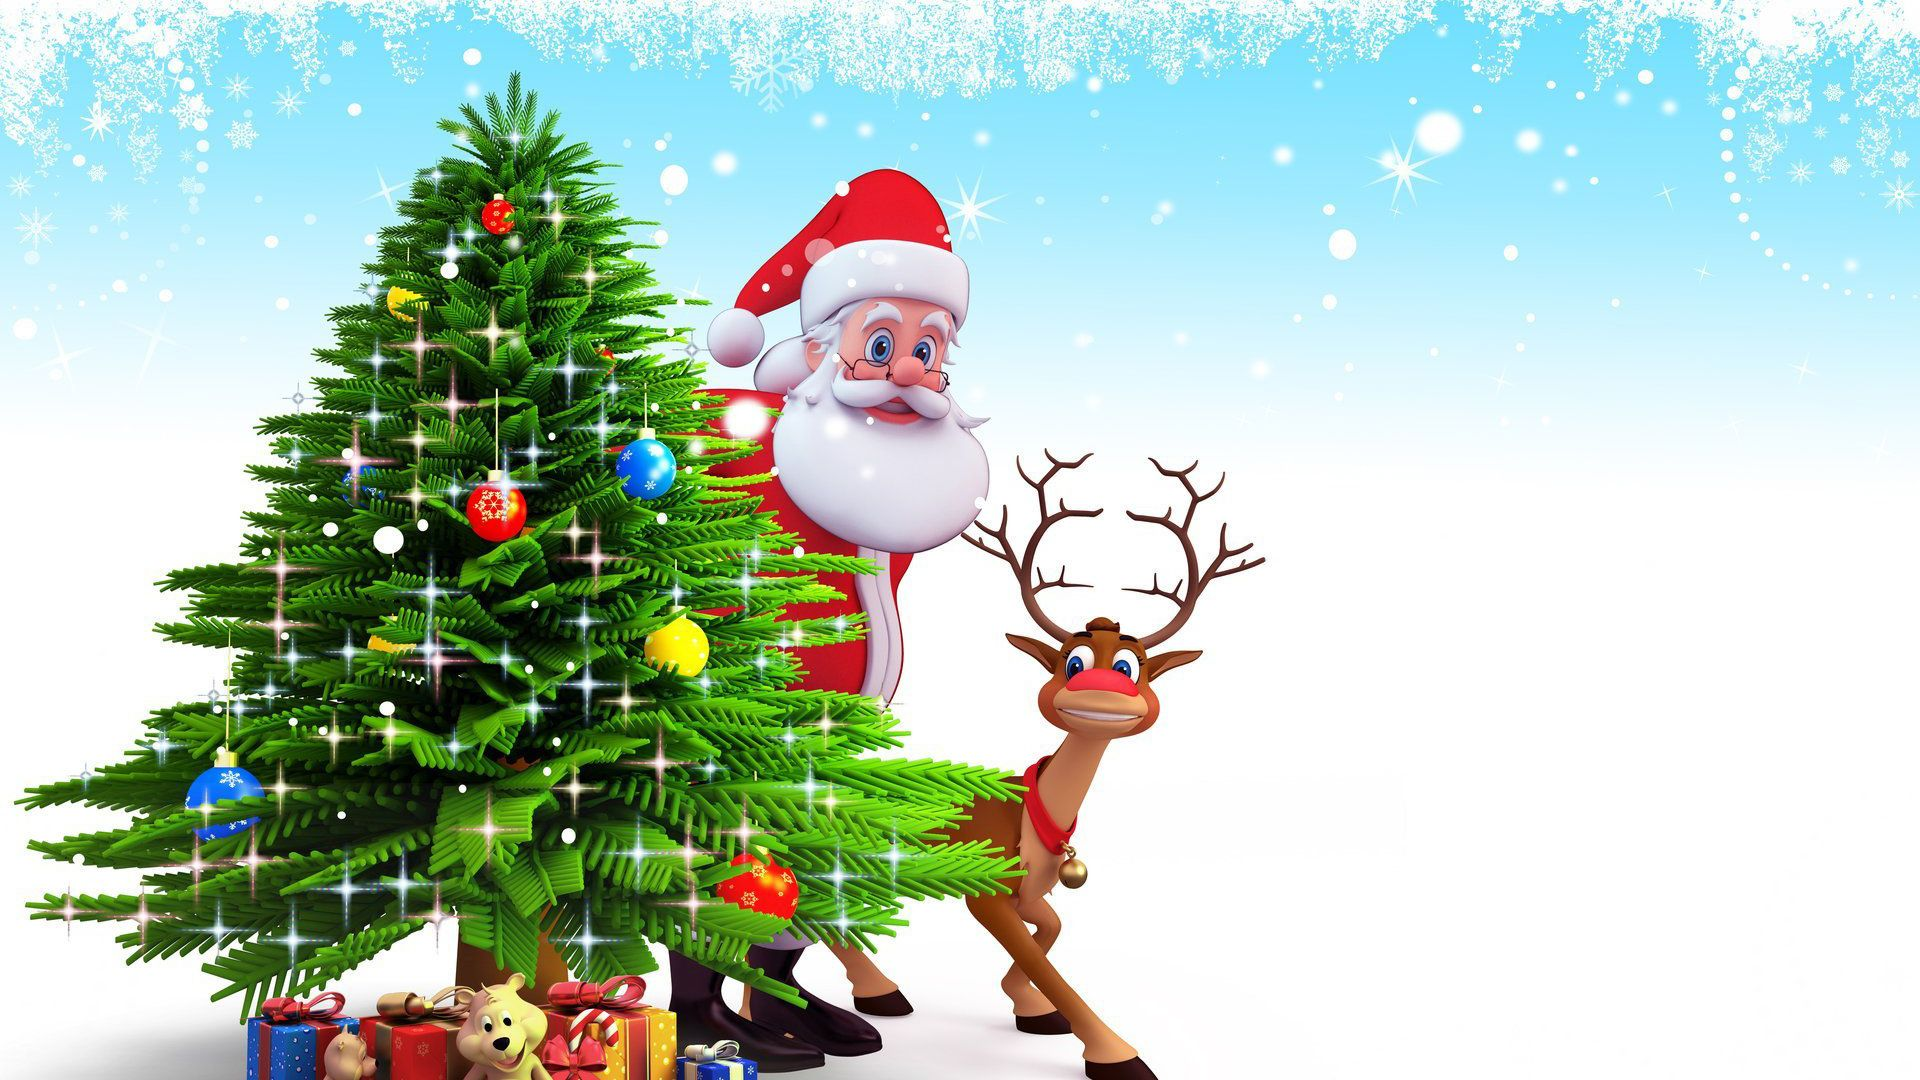 Christmas Santa Claus Wallpaper1920 X 1080